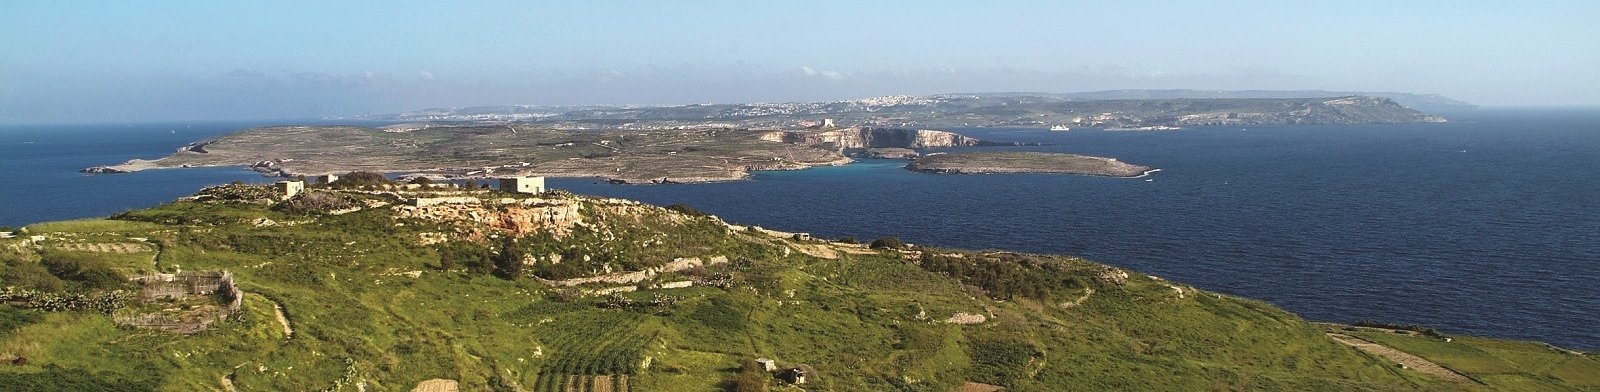 Gozo countryside